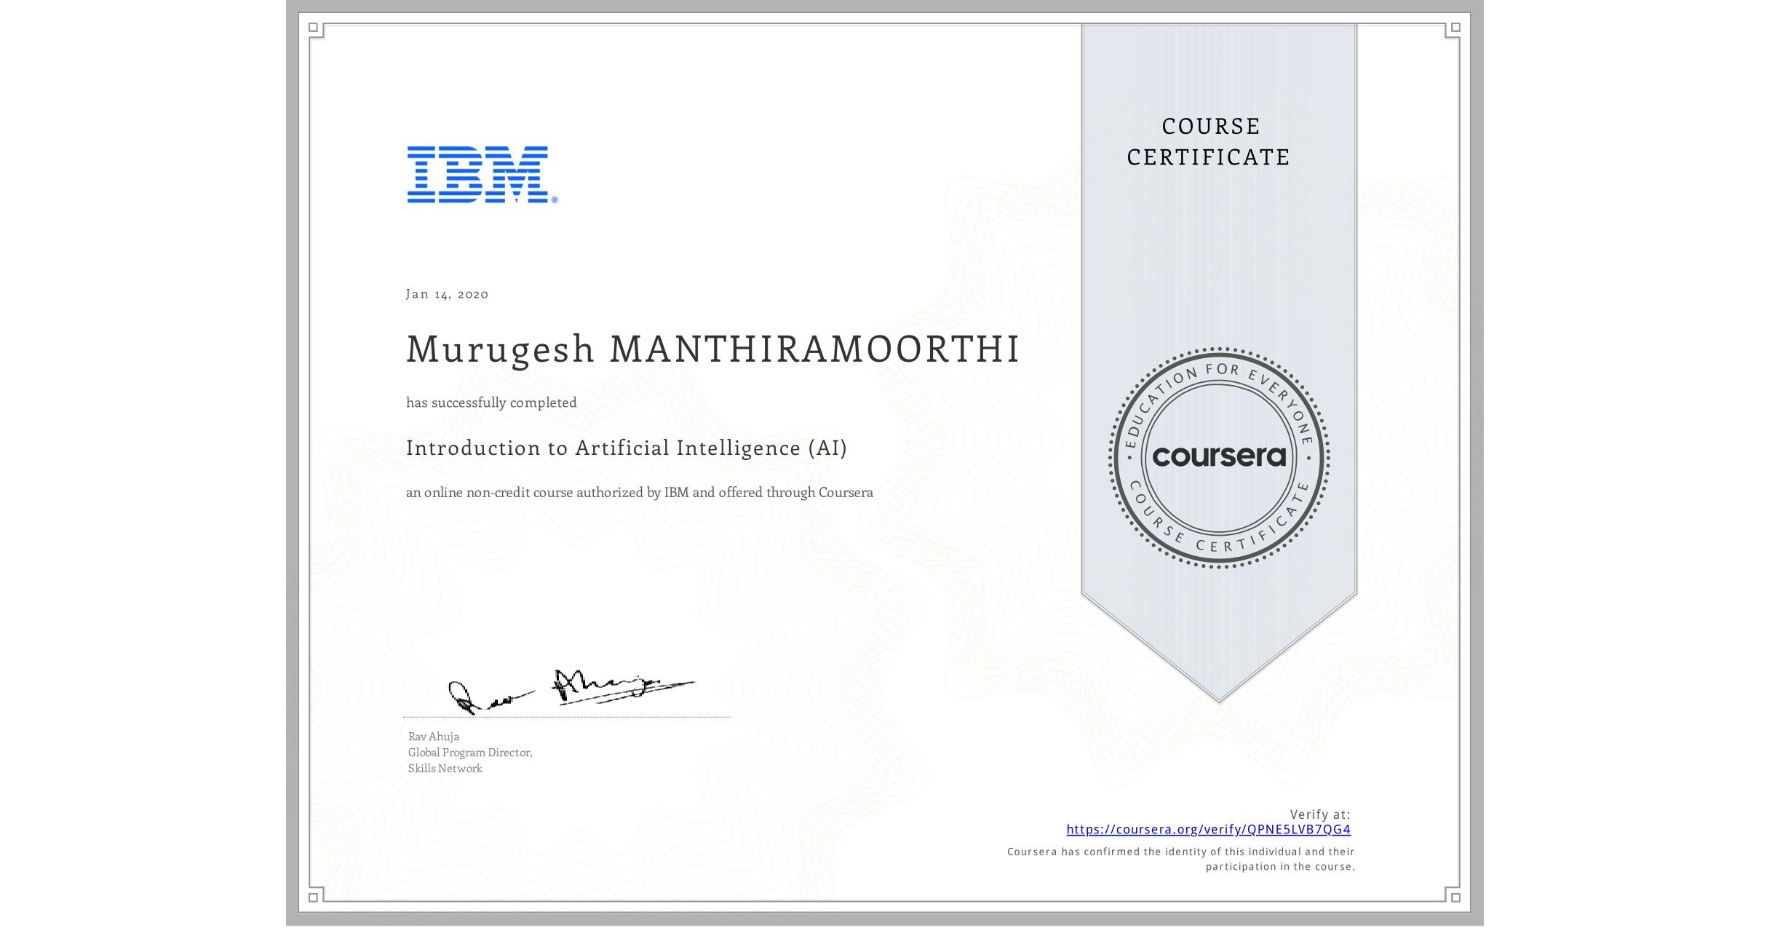 View certificate for Murugesh Manthiramoorthi, Introduction to Artificial Intelligence (AI), an online non-credit course authorized by IBM and offered through Coursera